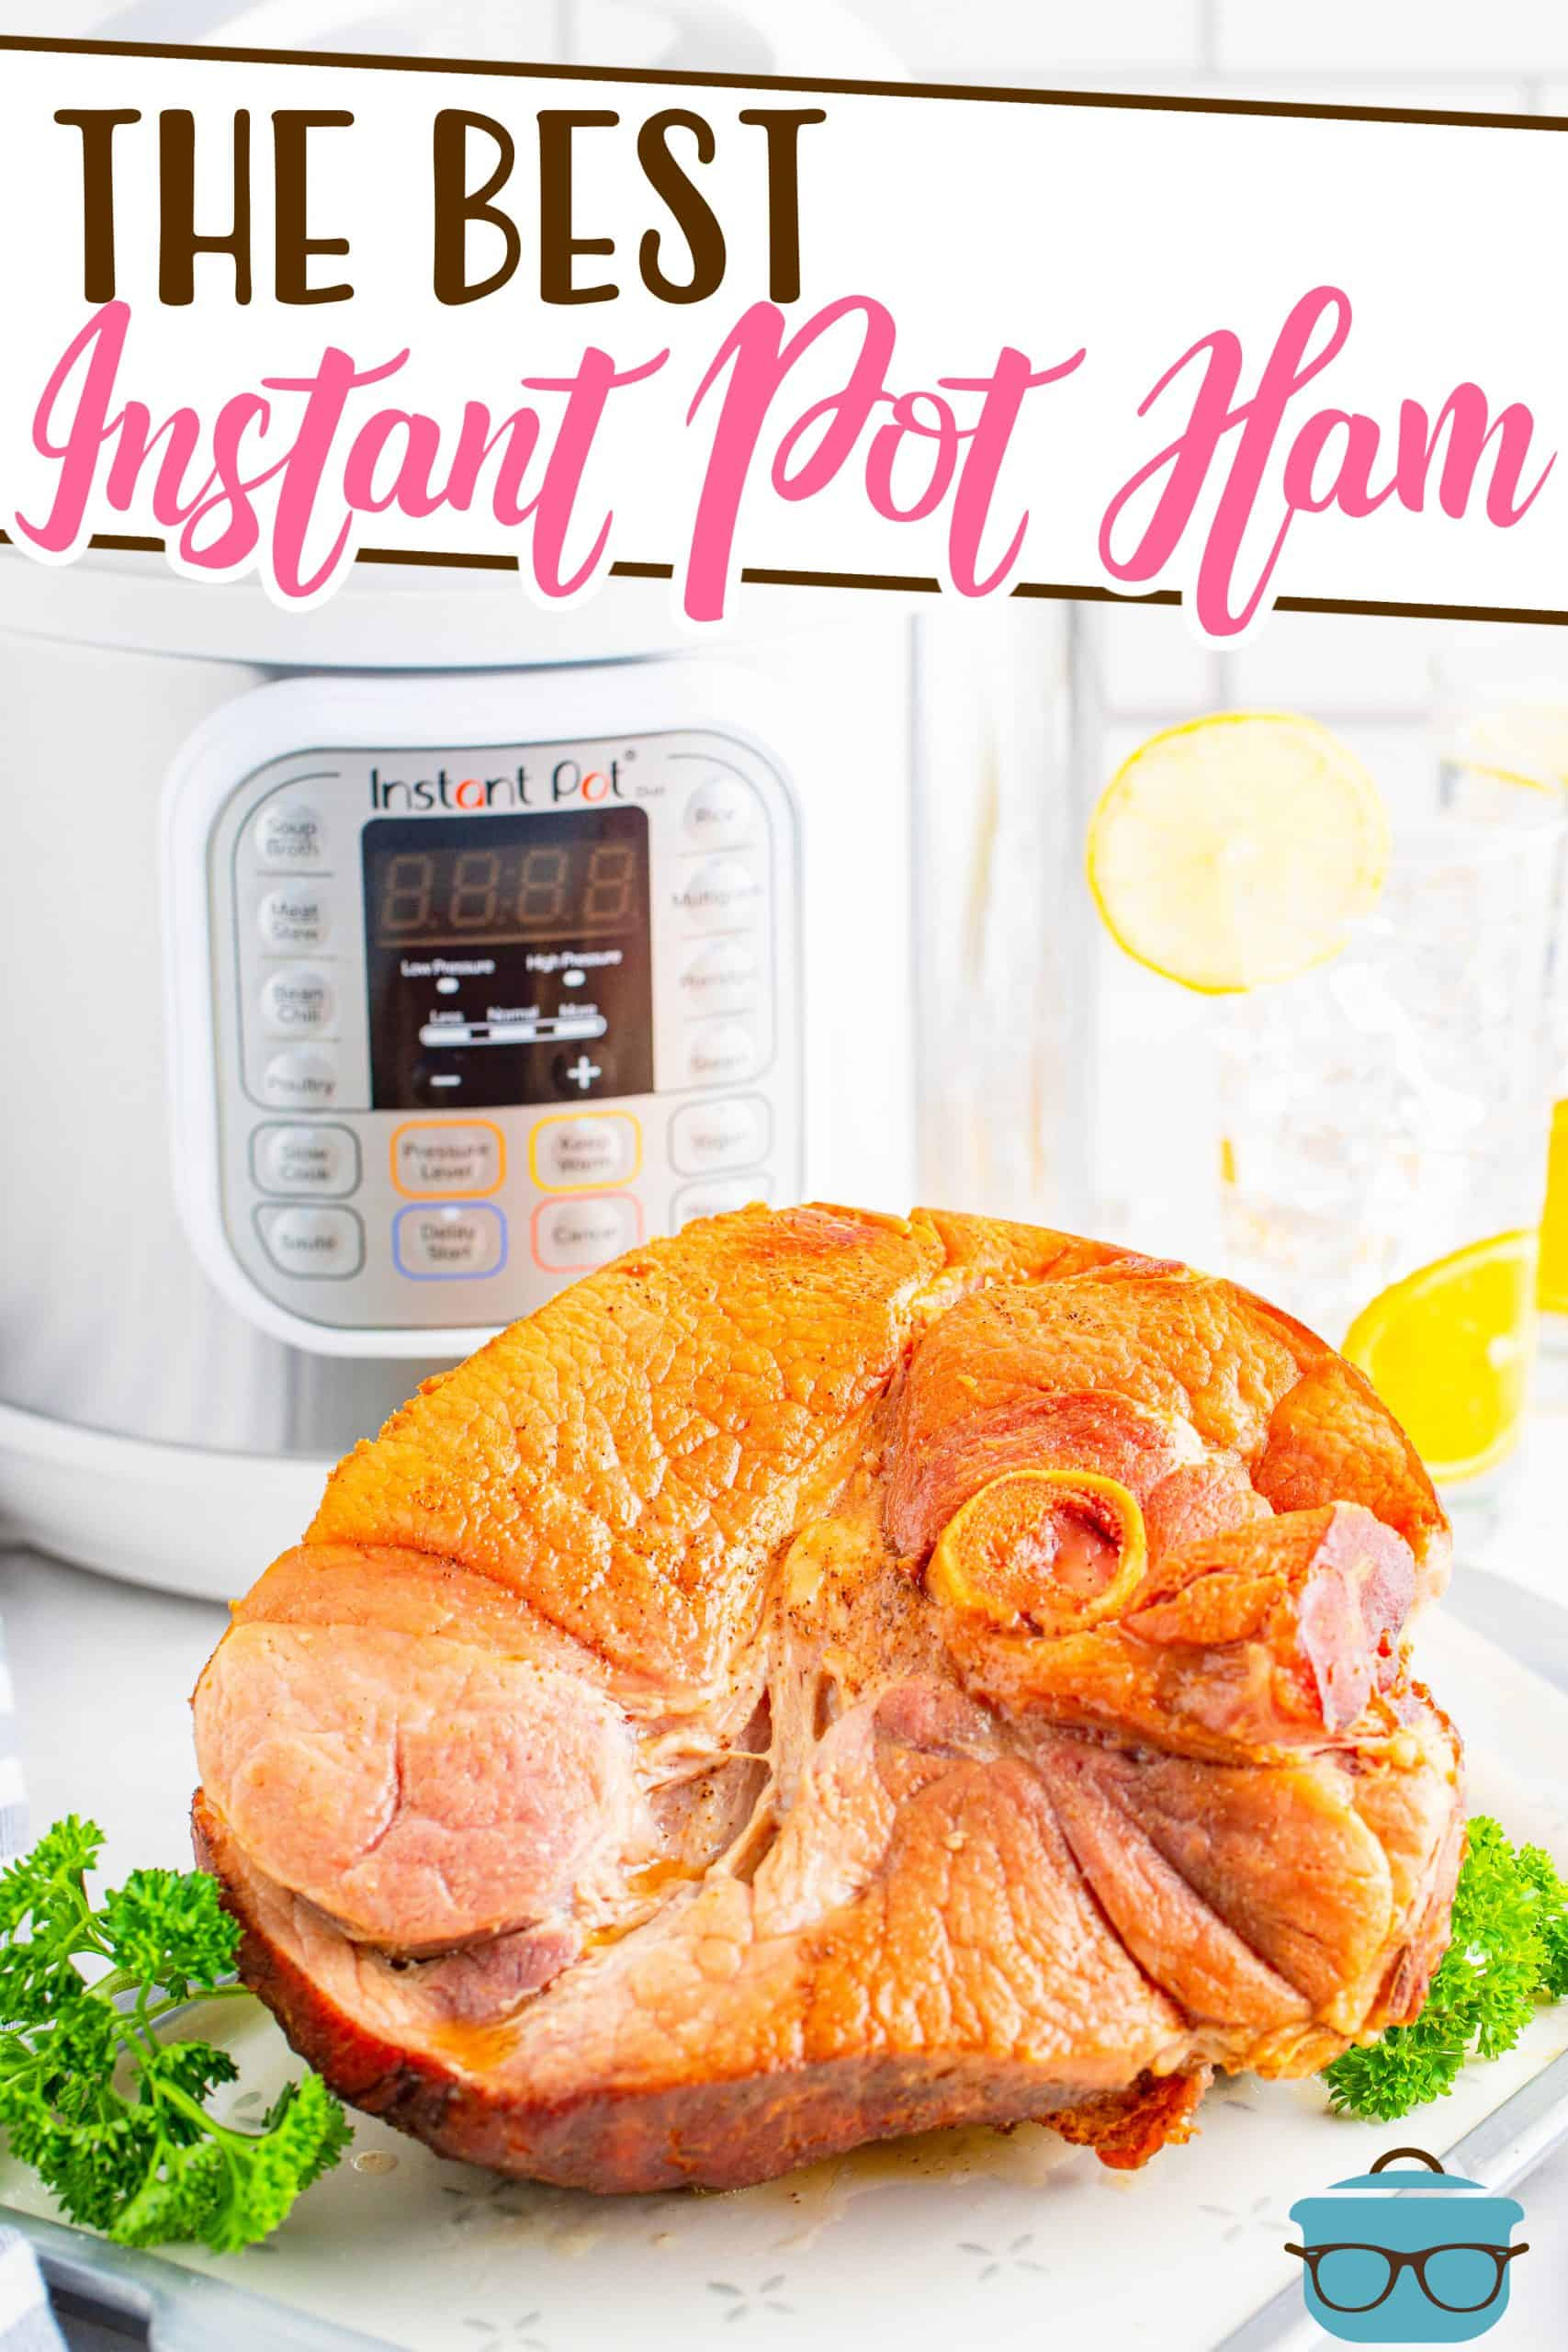 Instant Pot Bone-In Ham is an easy, moist, flavorful recipe. All that is needed is ham, brown sugar, pineapple juice and ground cloves. #instantpot #wholeham